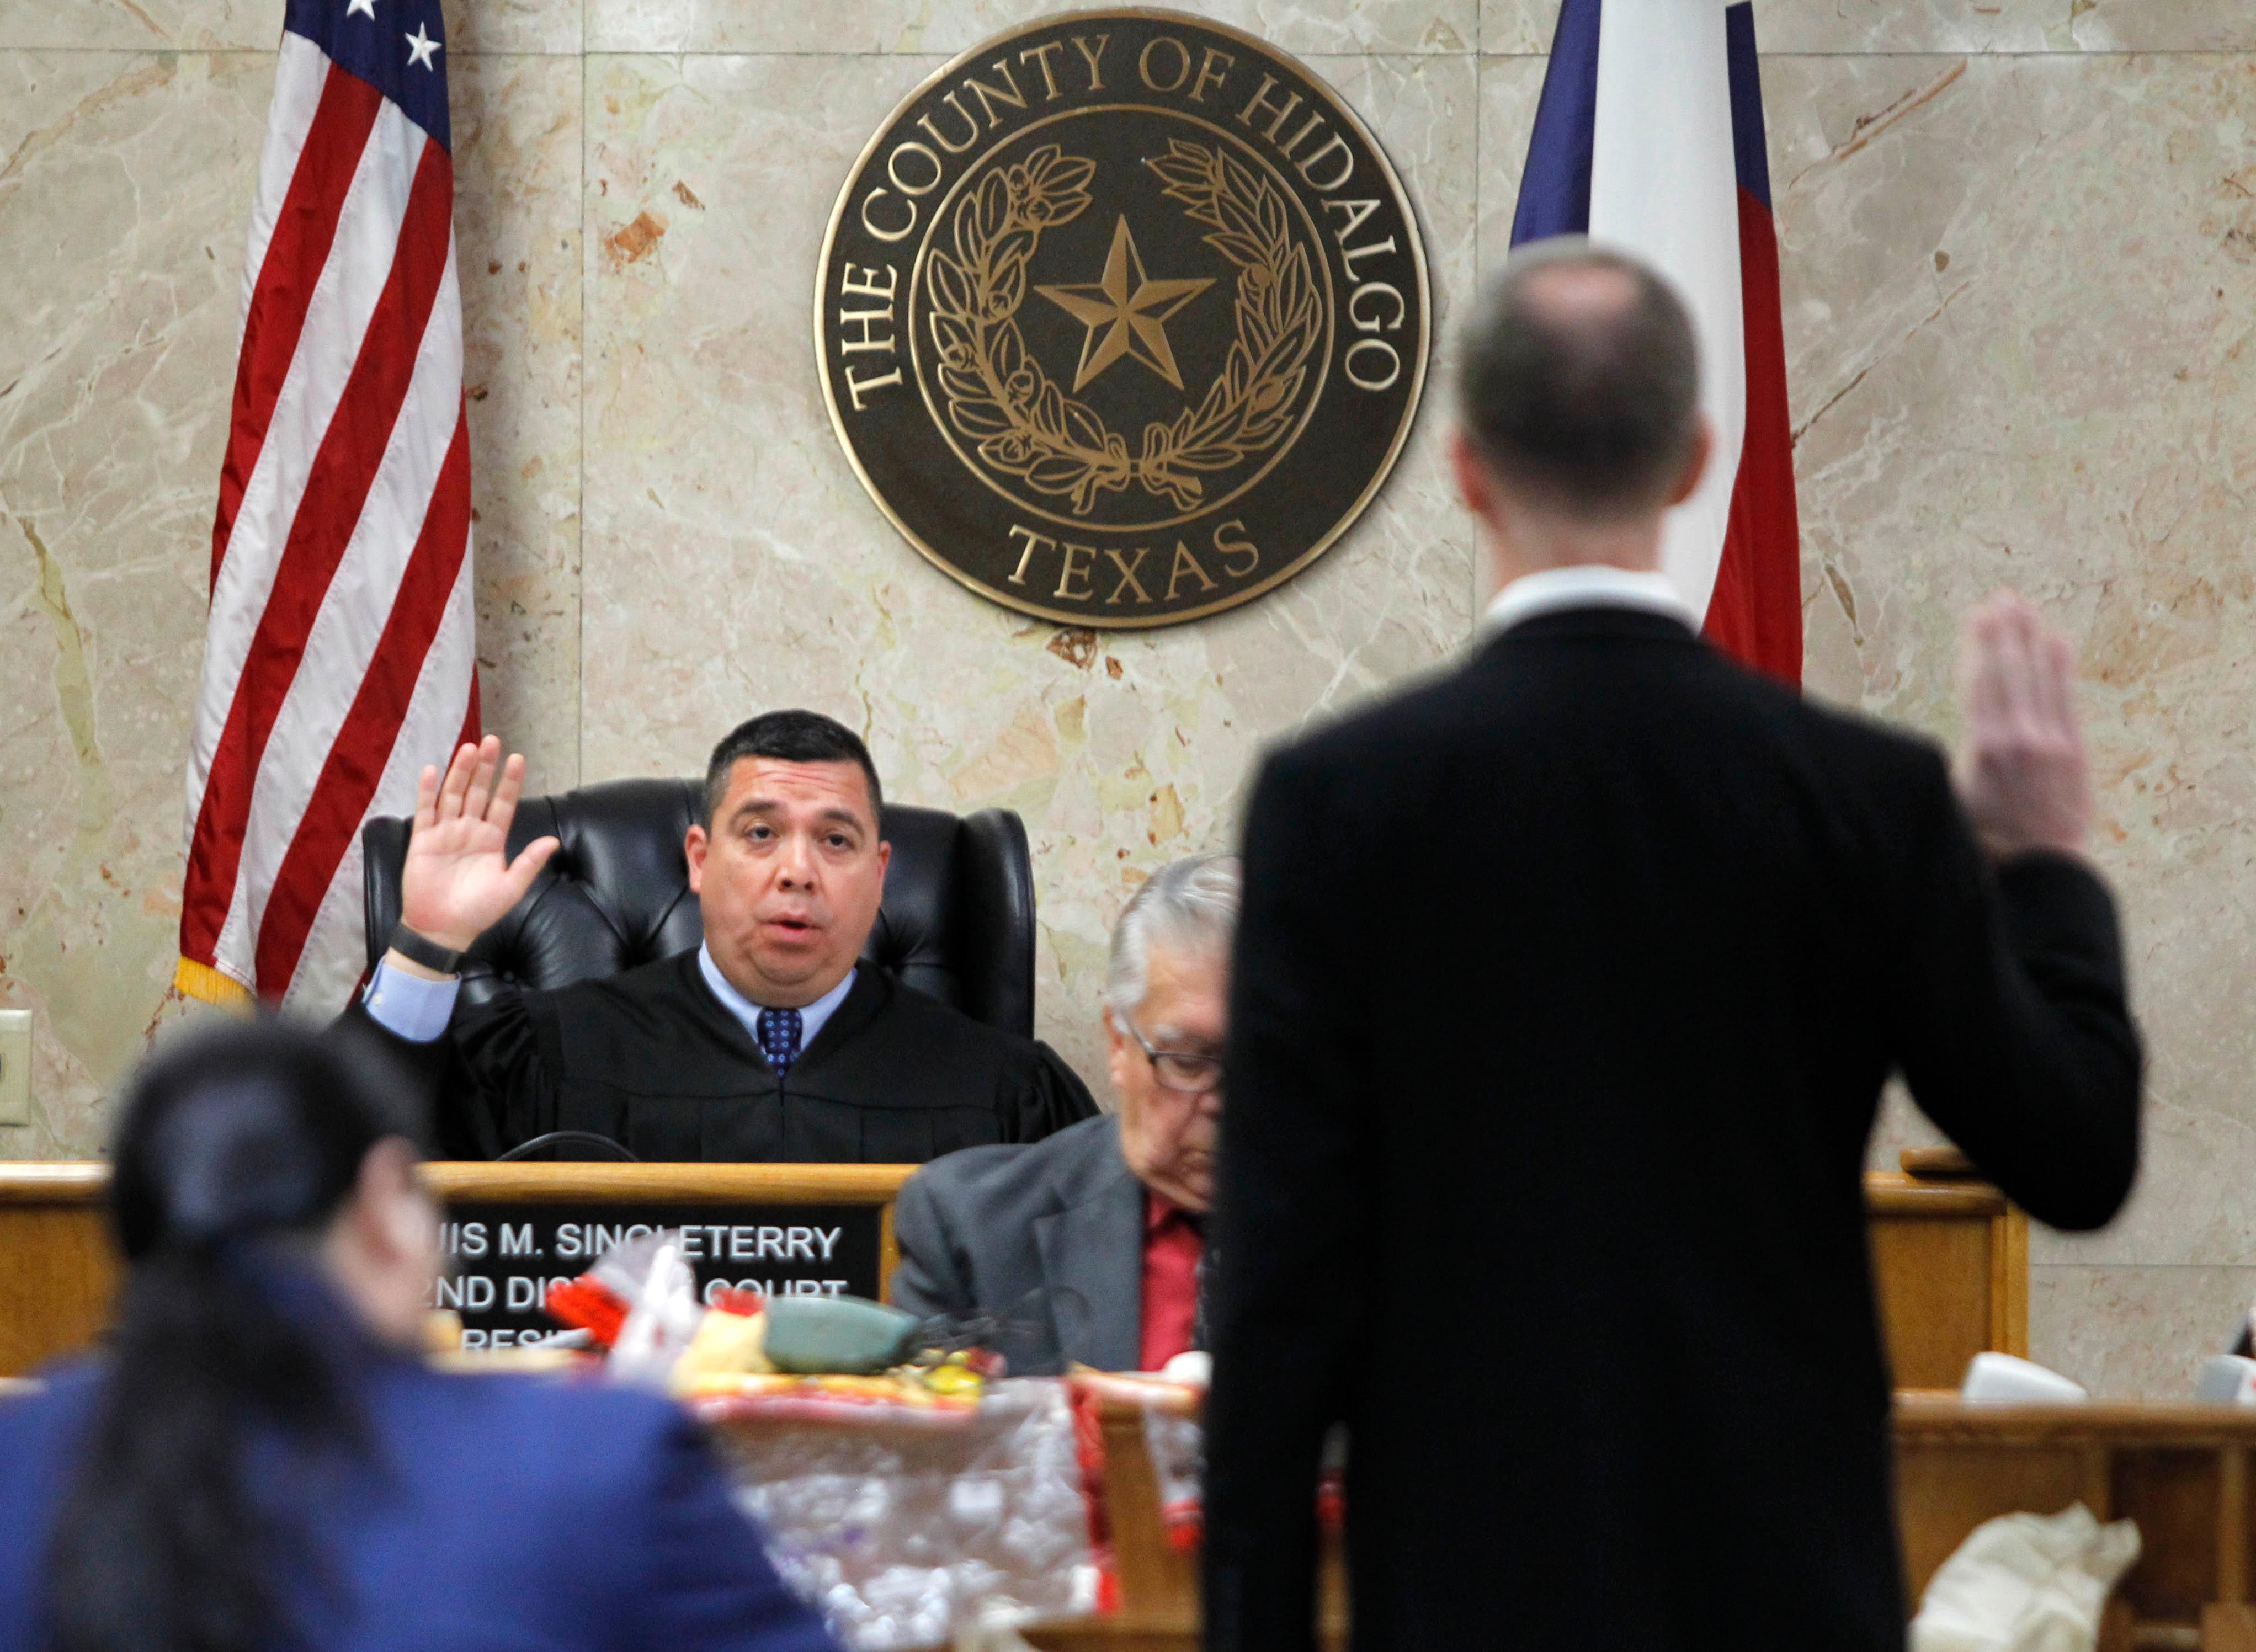 92nd state District Judge Luis Singleterry swears in Brooks Egerton during John Bernard Feit's trial for the 1960 murder of Irene Garza Tuesday, December 5, 2017, at the Hidalgo County Courthouse in Edinburg. Egerton is a former reporter of the Dallas Morning News who interviewed Rev. Joseph O'Brien about Feit's involvement in the murder of Garza.  (Nathan Lambrecht/The Monitor/Pool)